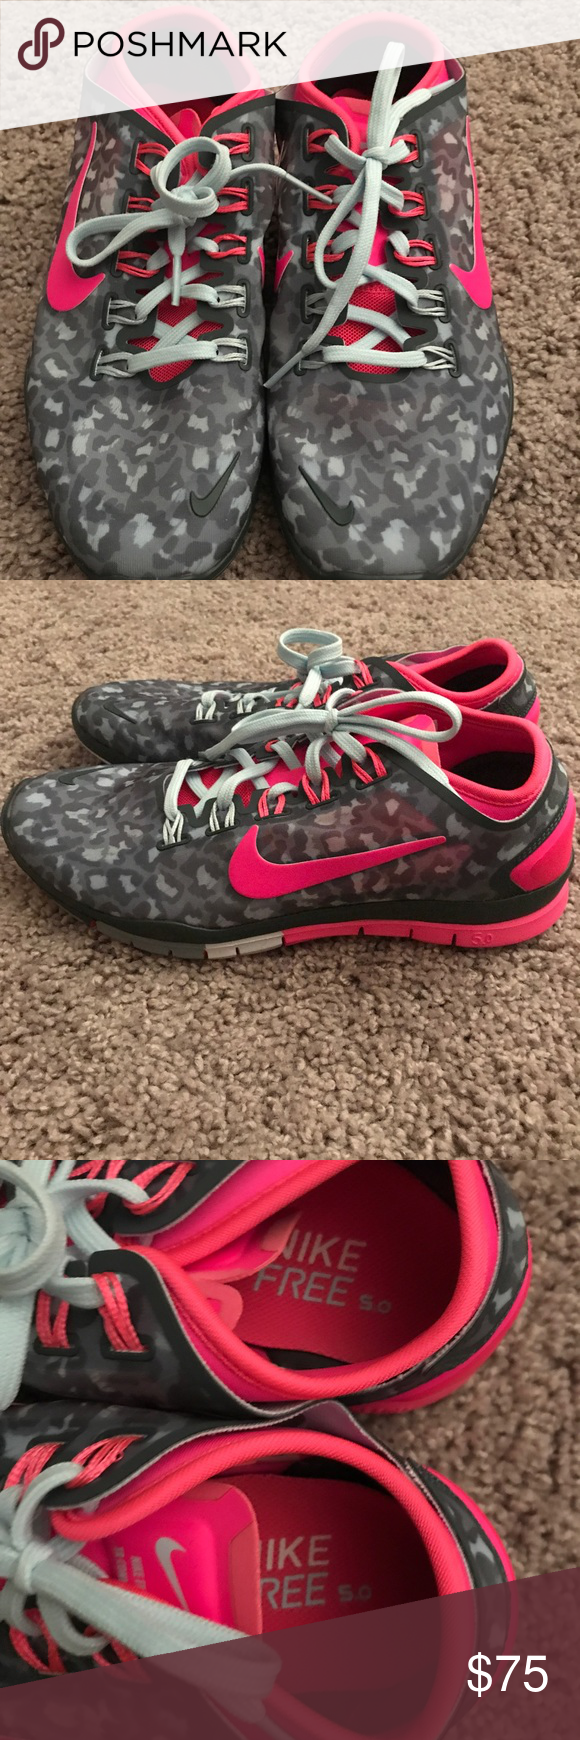 Pink & Grey Nike Shoes